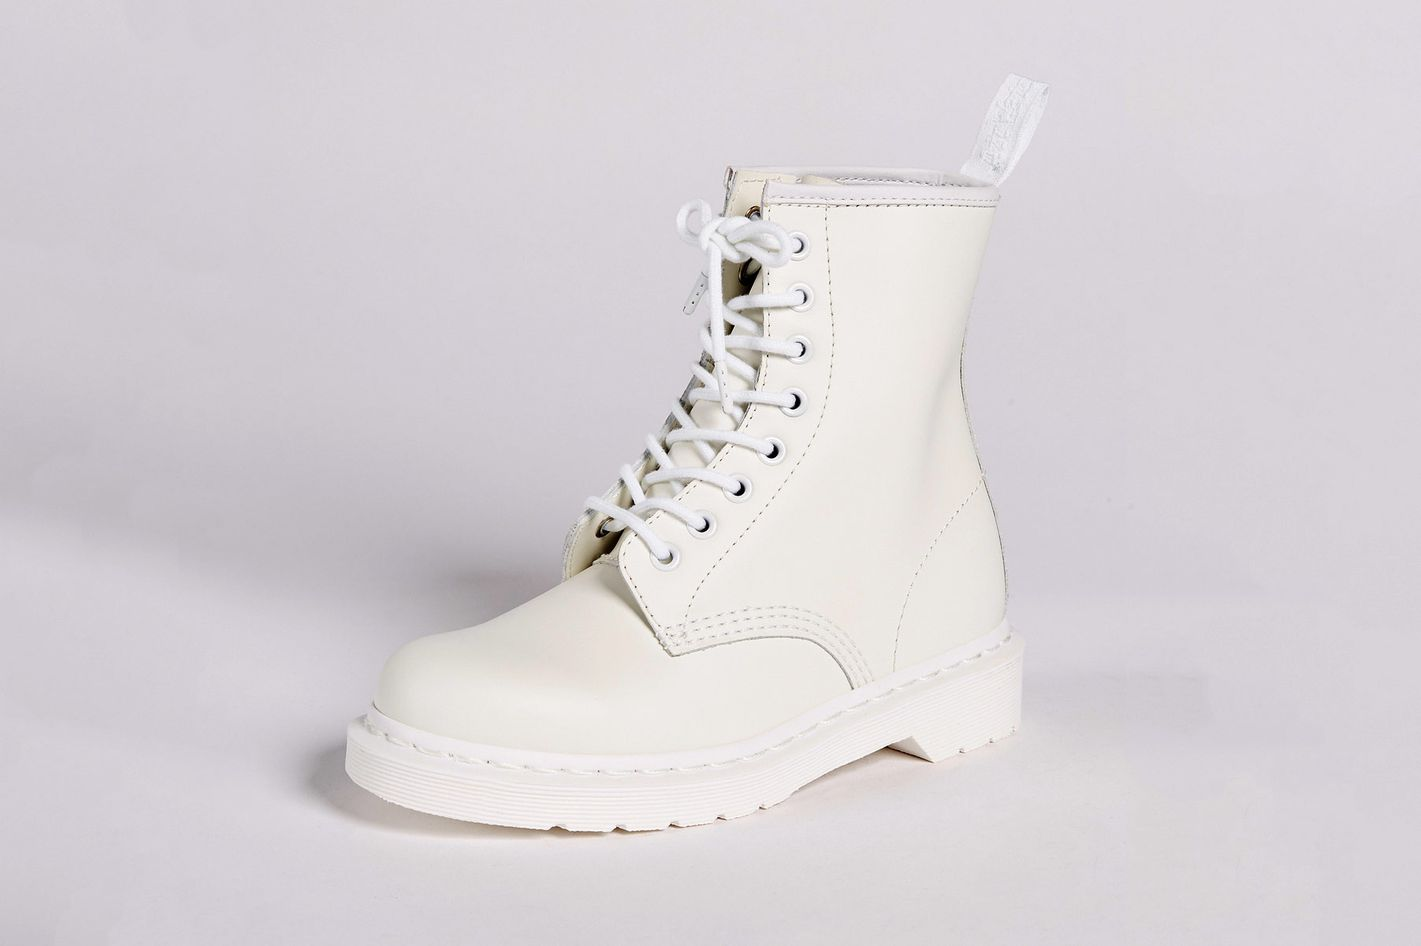 Dr. Martens 1460 Mono 8 Eye Boots